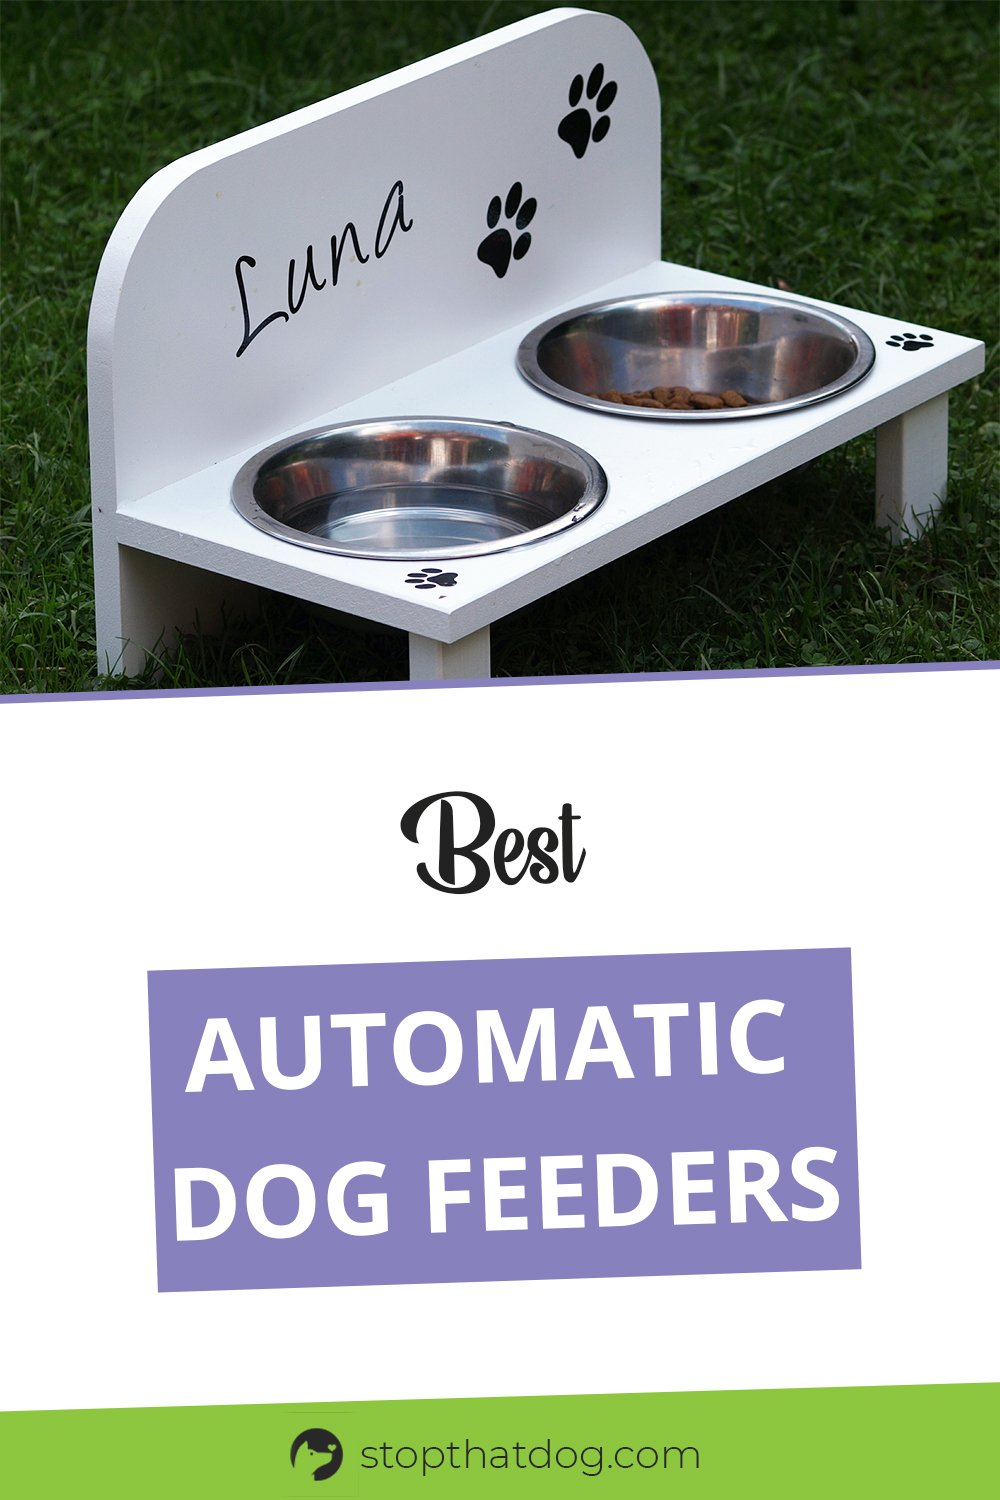 What's The Best Automatic Dog Feeder? Check Our Top Picks